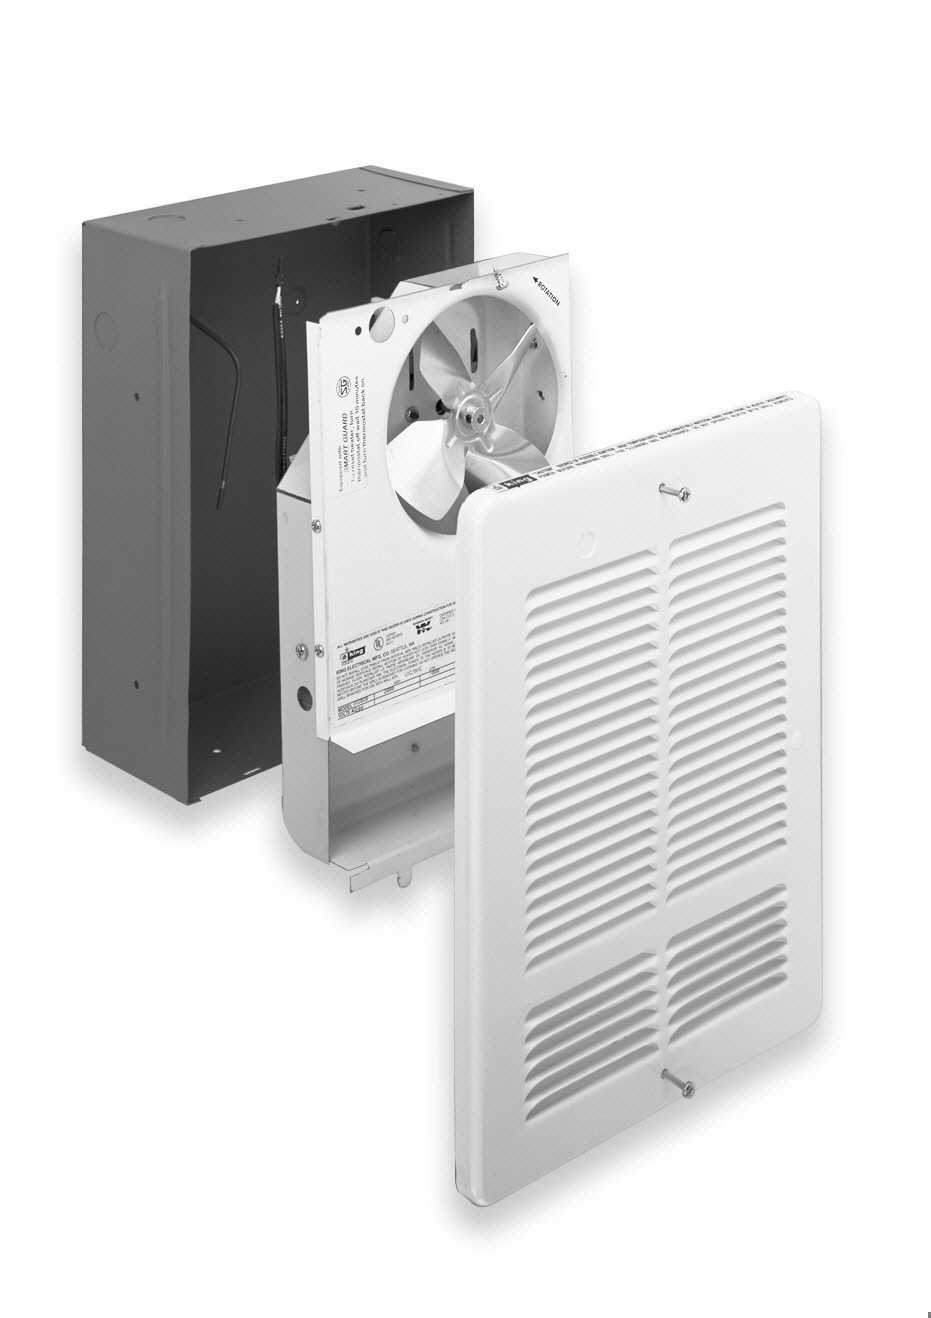 King Electric W2420-W King W2420 240-Volt 2000-Watt Electric Wall Heater, Bright White by King Electric (Image #2)